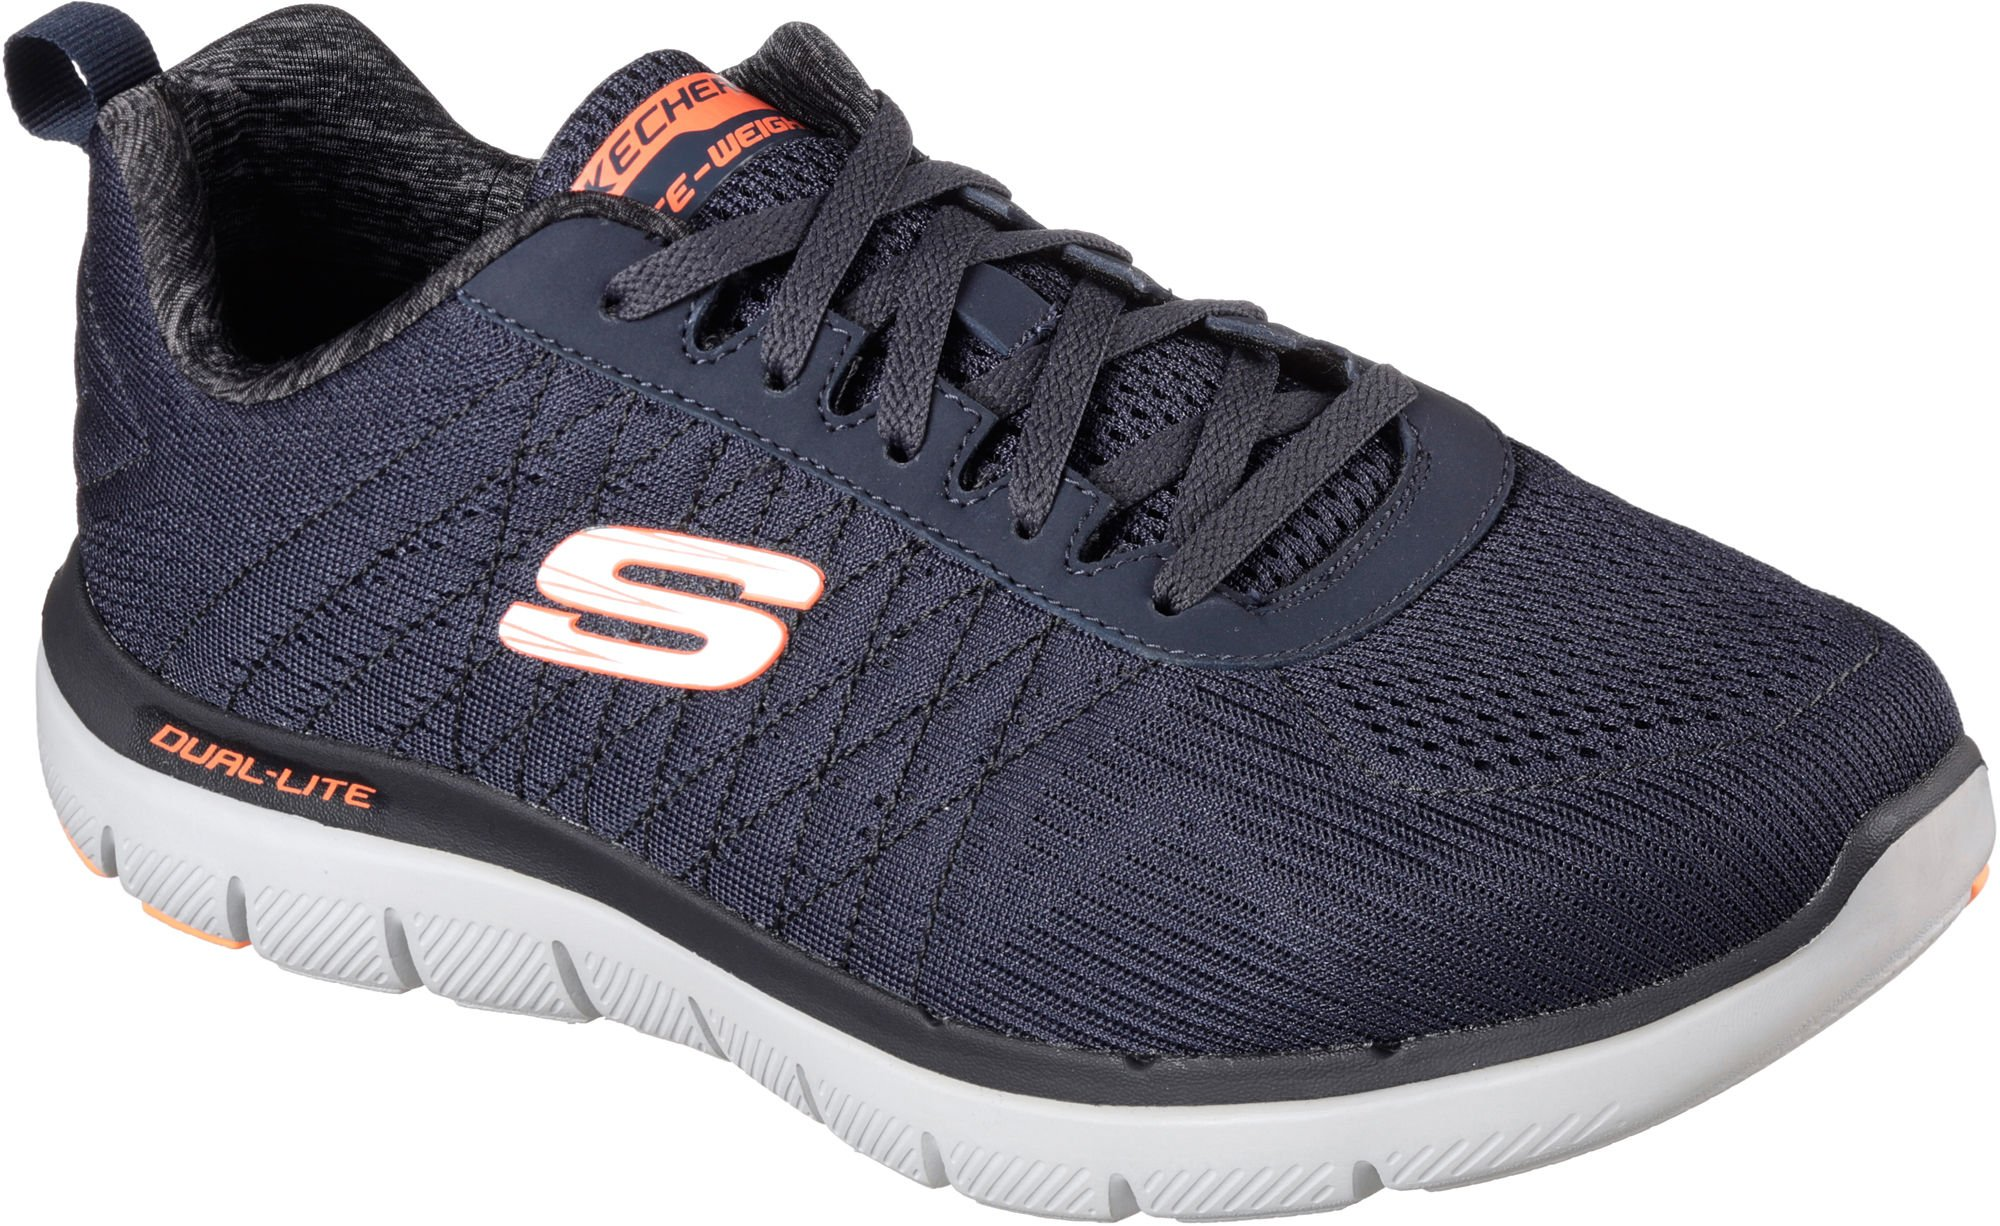 Skechers Flex Advantage 2.0 The Happs Mens Sneakers Dark Navy 11.5